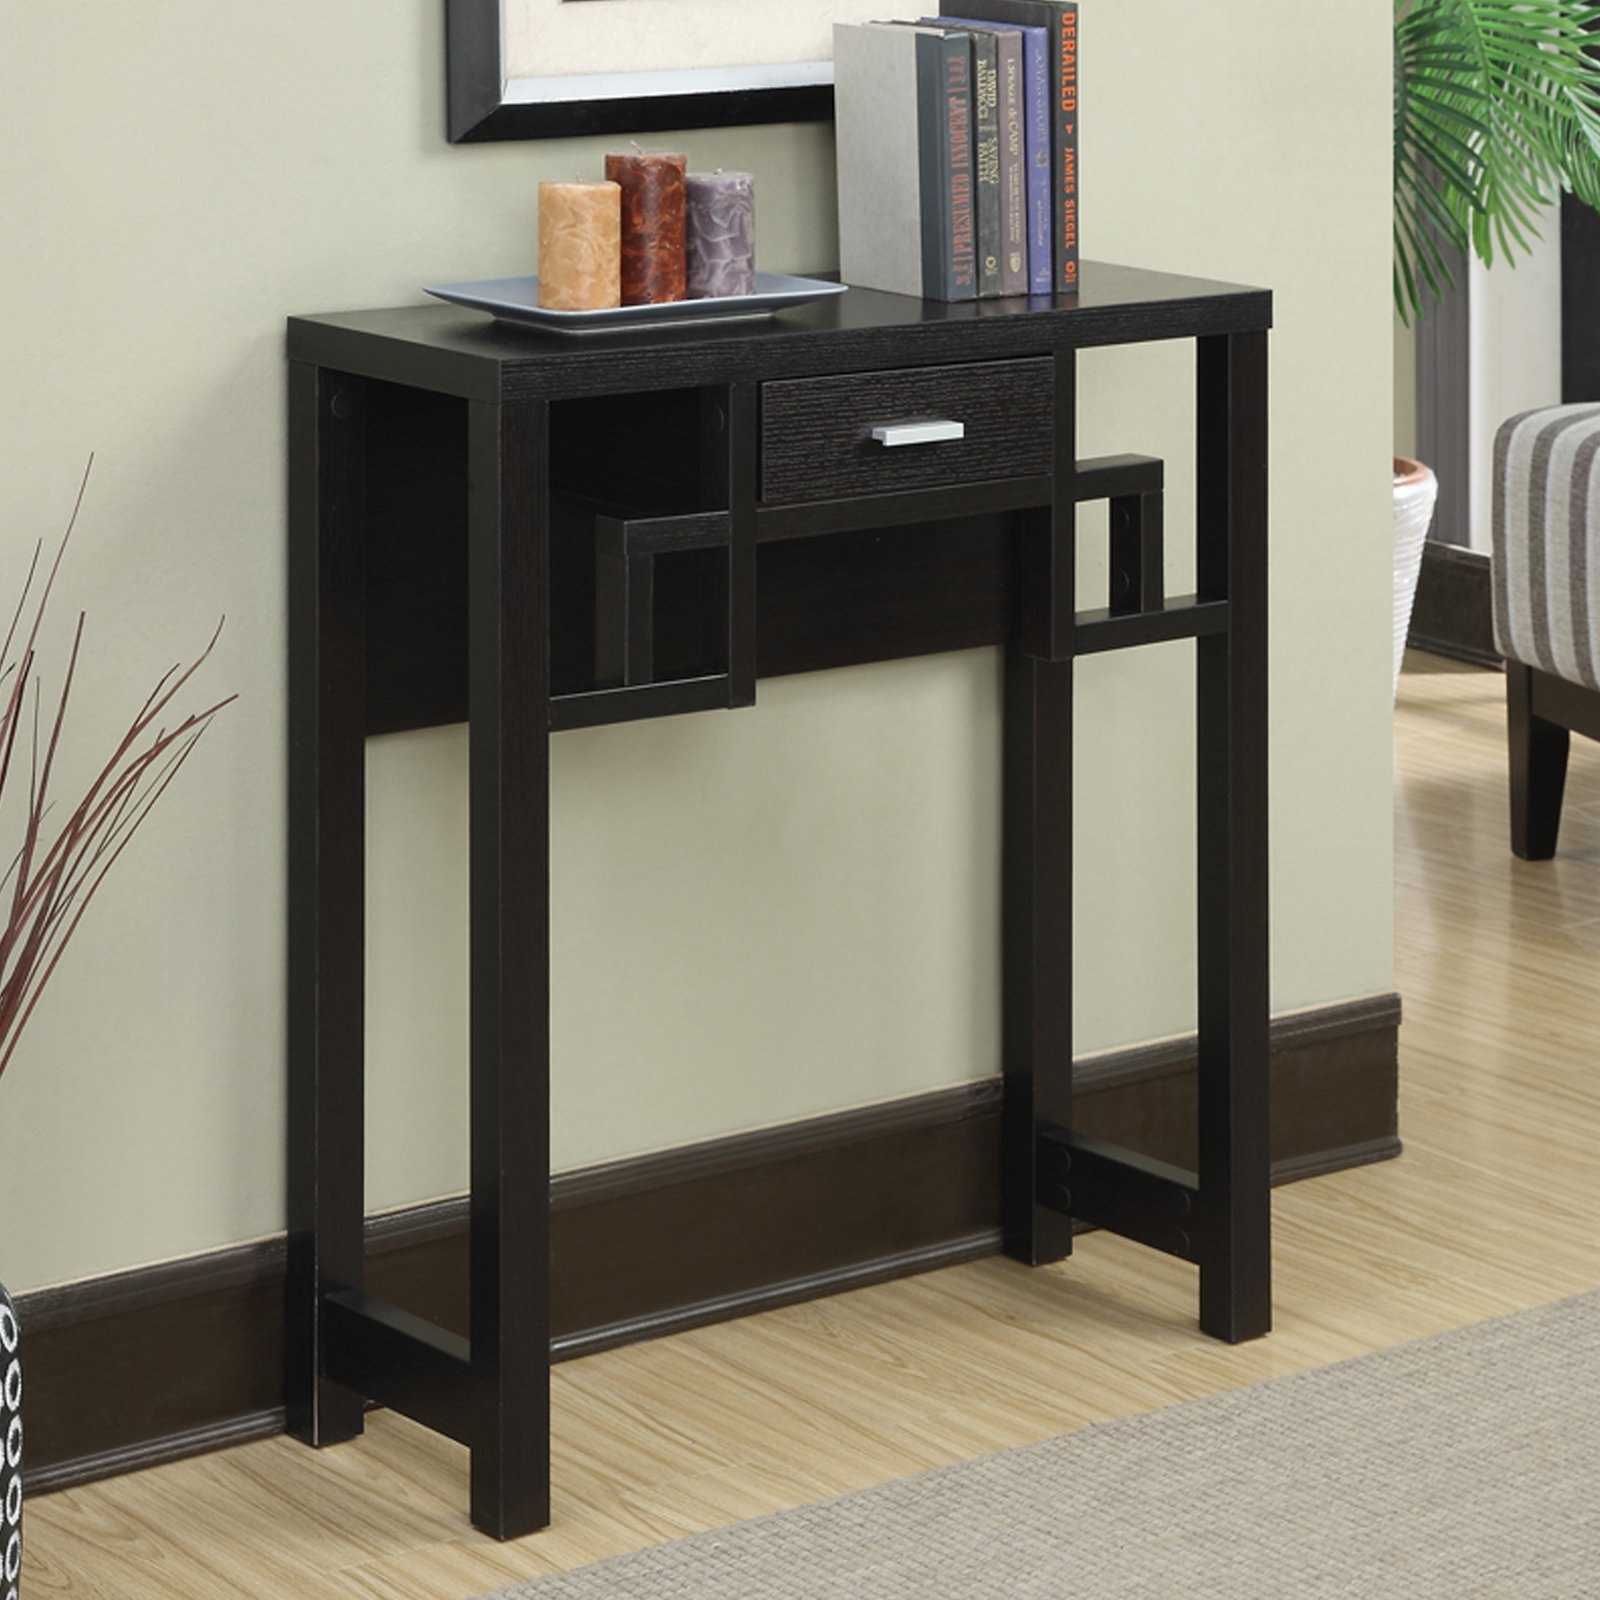 Convenience Concepts Newport Laurel Console Table by Generic